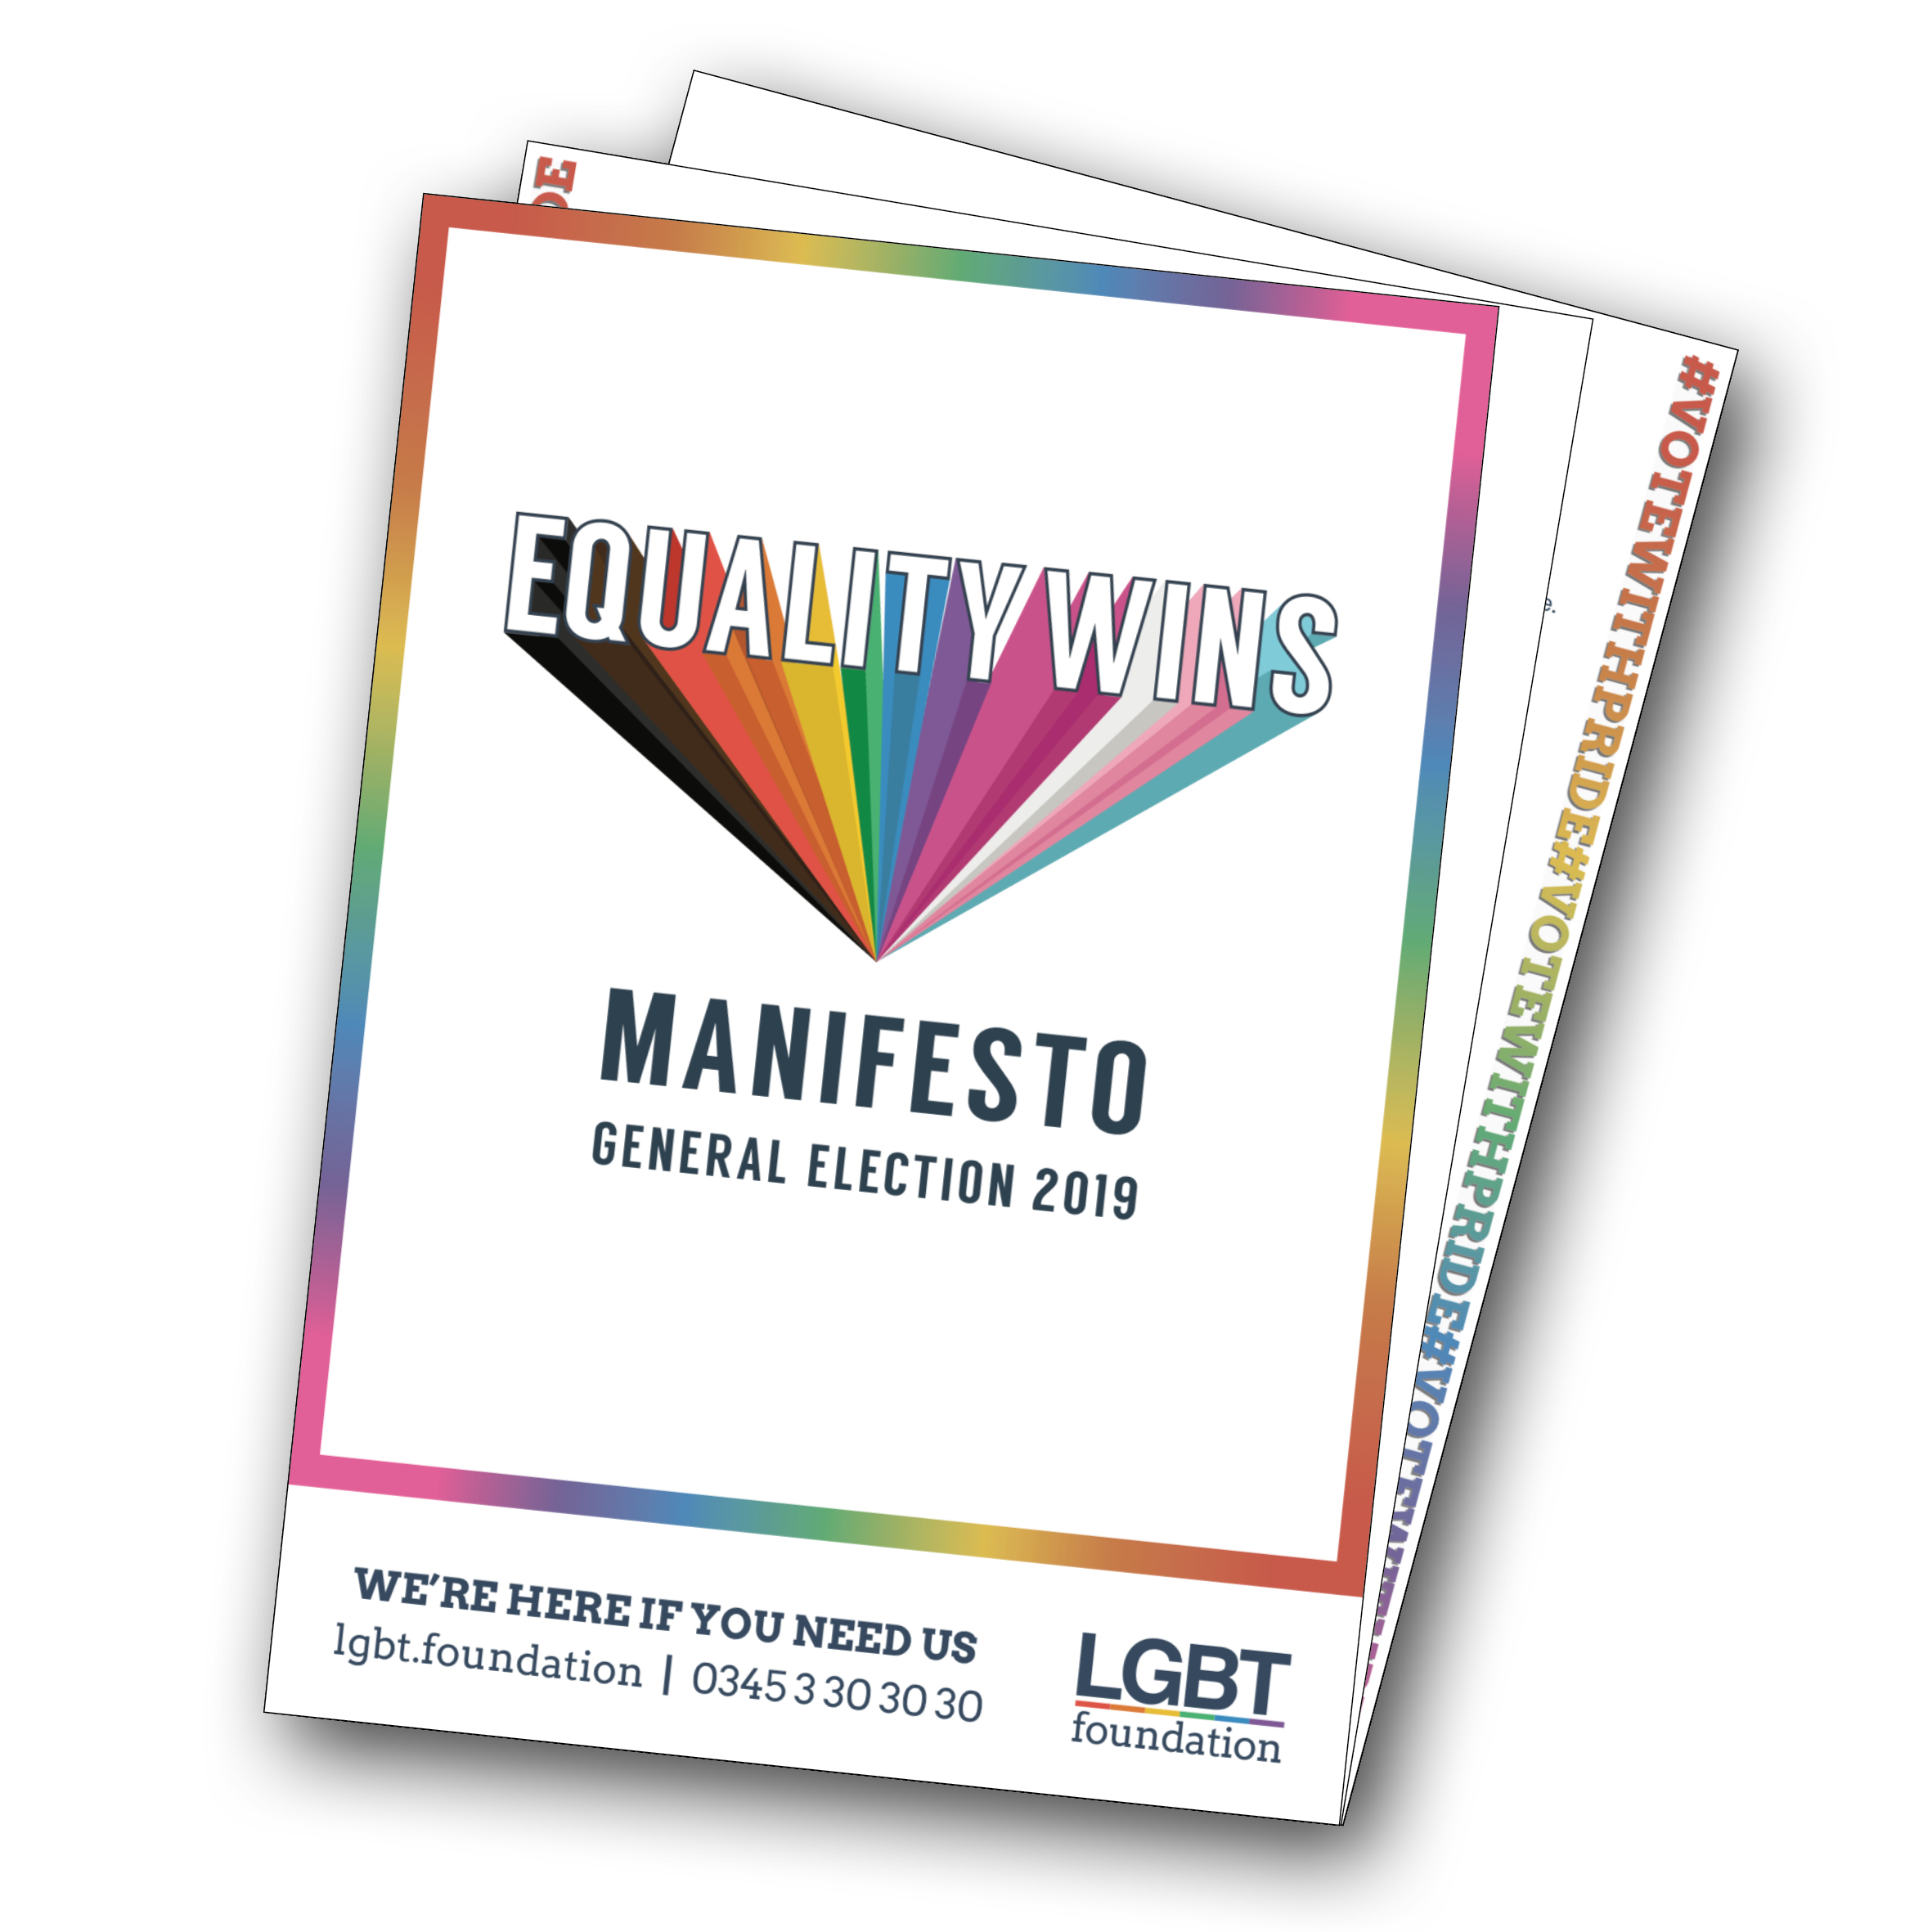 DOWNLOAD THE MANIFESTO